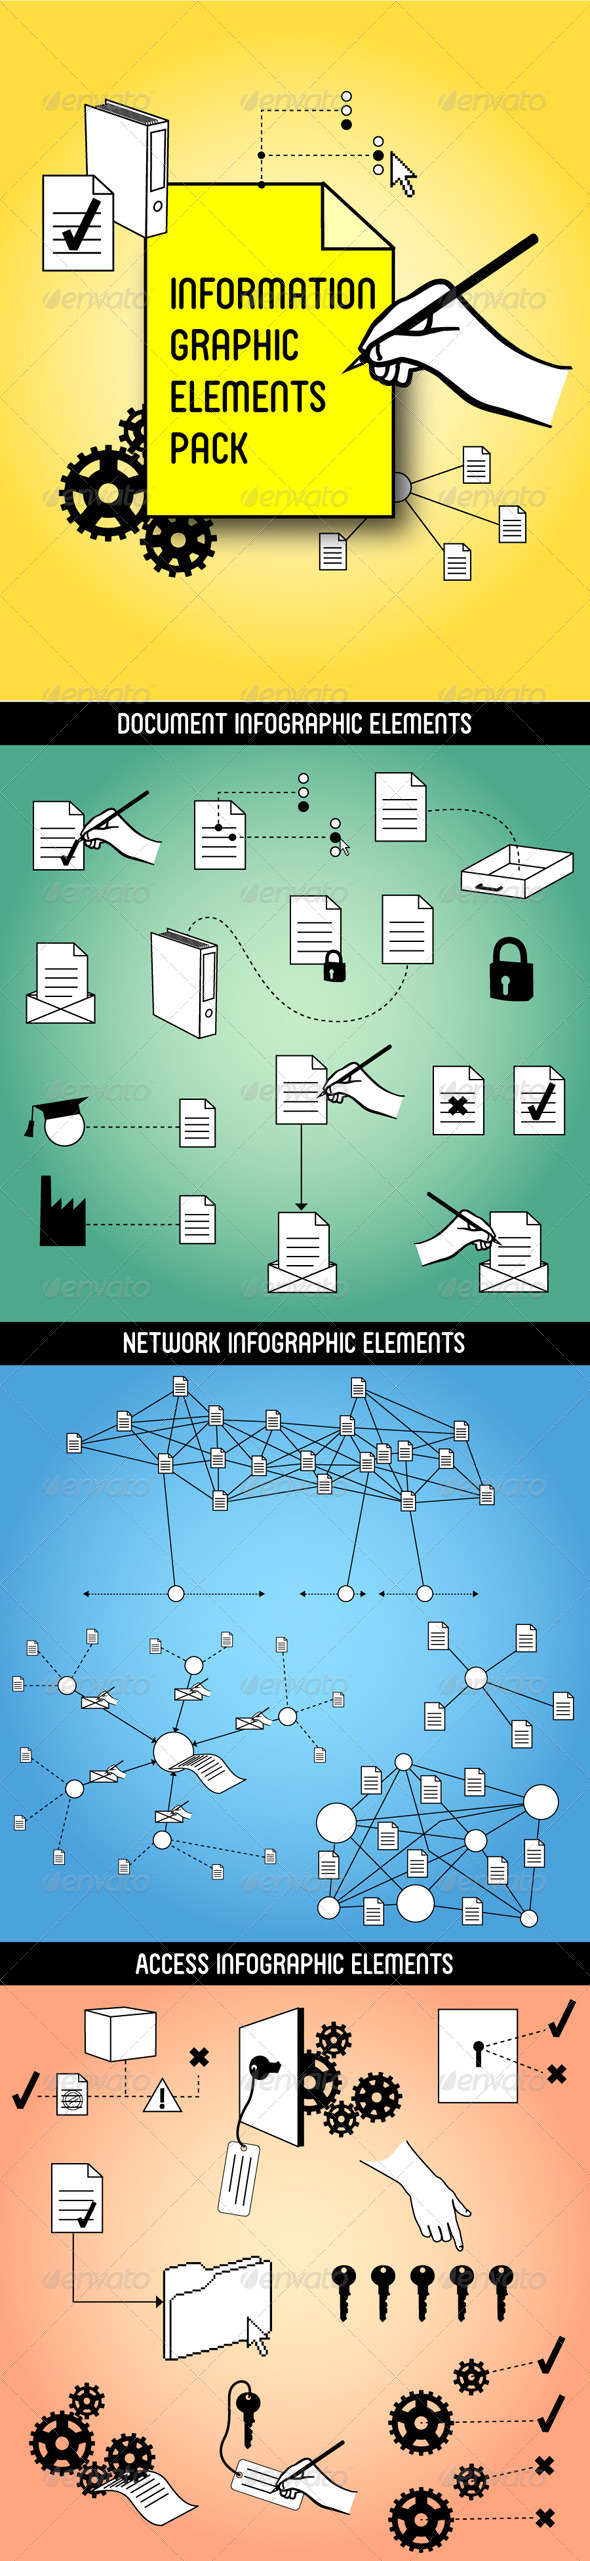 Information Graphic Elements Pack - Concepts Business